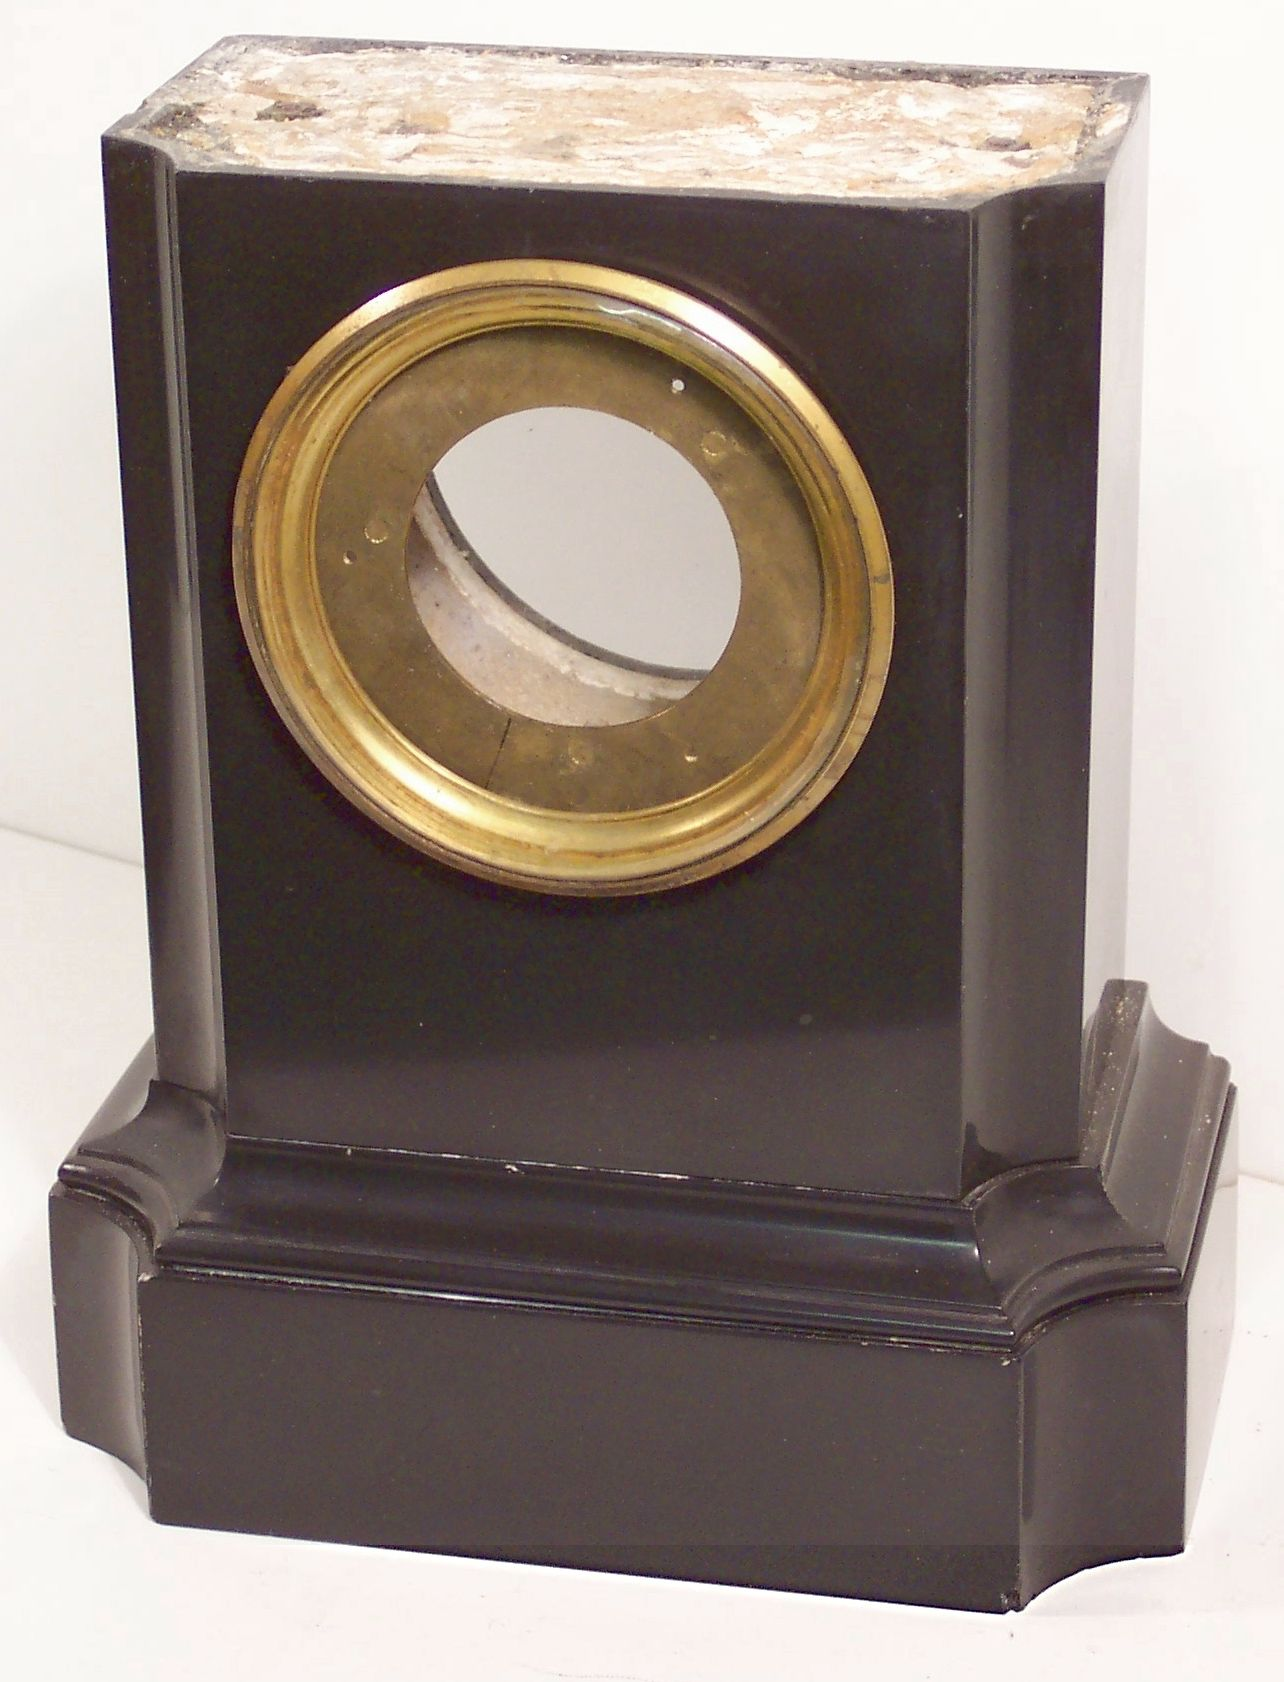 Restoring a black marble clock case with Clocks Magazine, figure 1